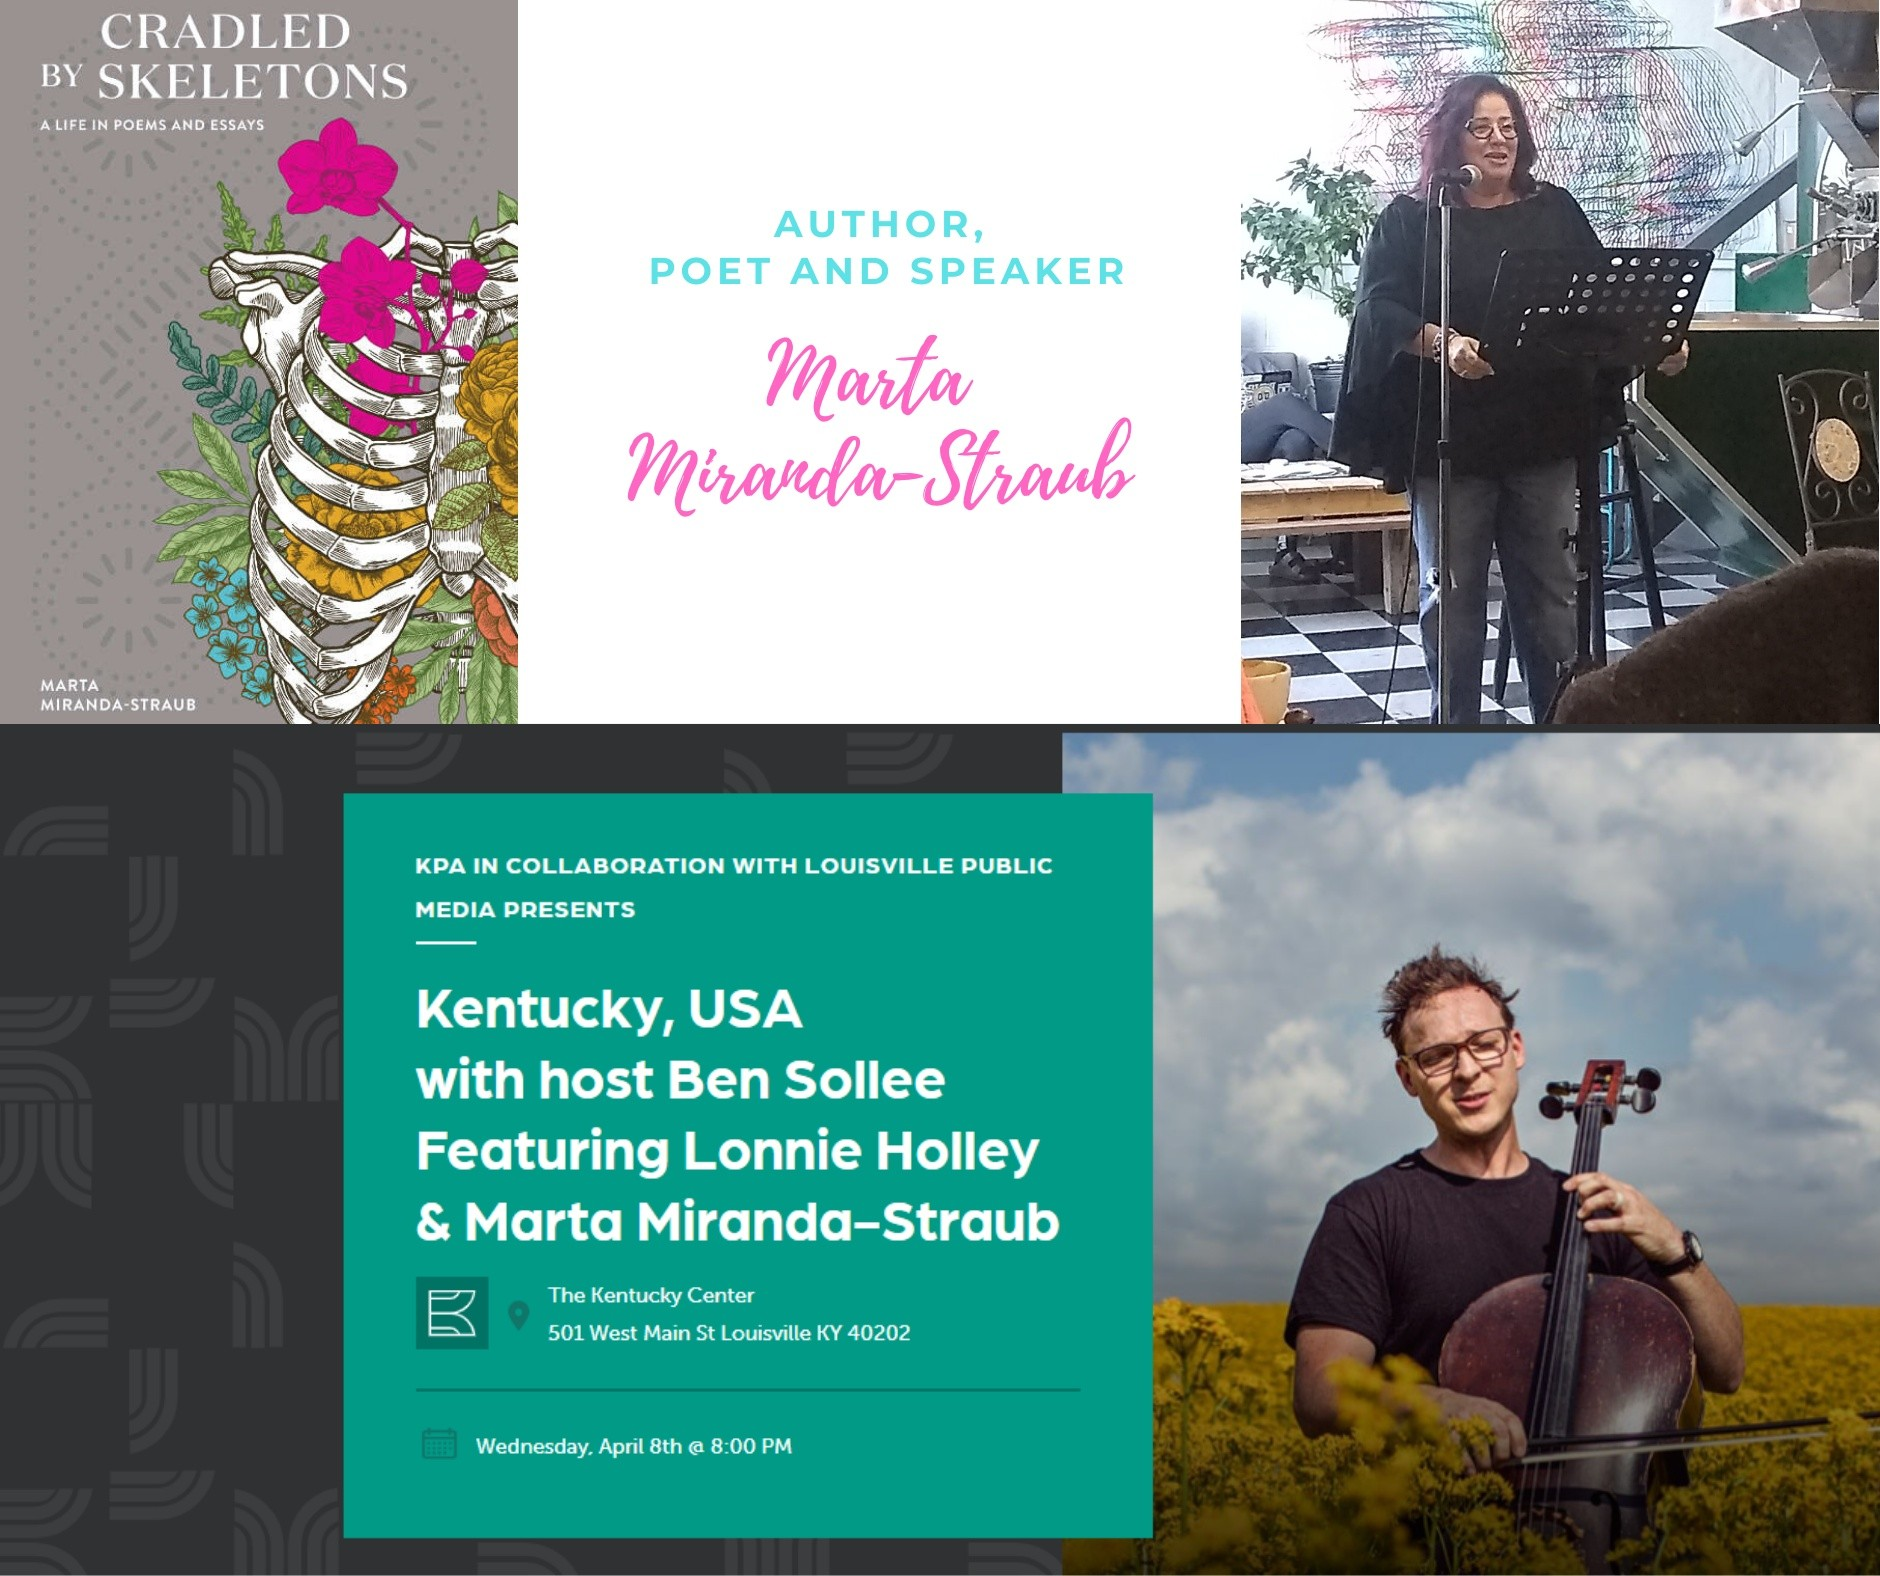 Kentucky, USA with host Ben Sollee, featuring Lonnie Holley and Marta Miranda-Straub, at the Kentucky Center, April 8, 2020 at 8 pm